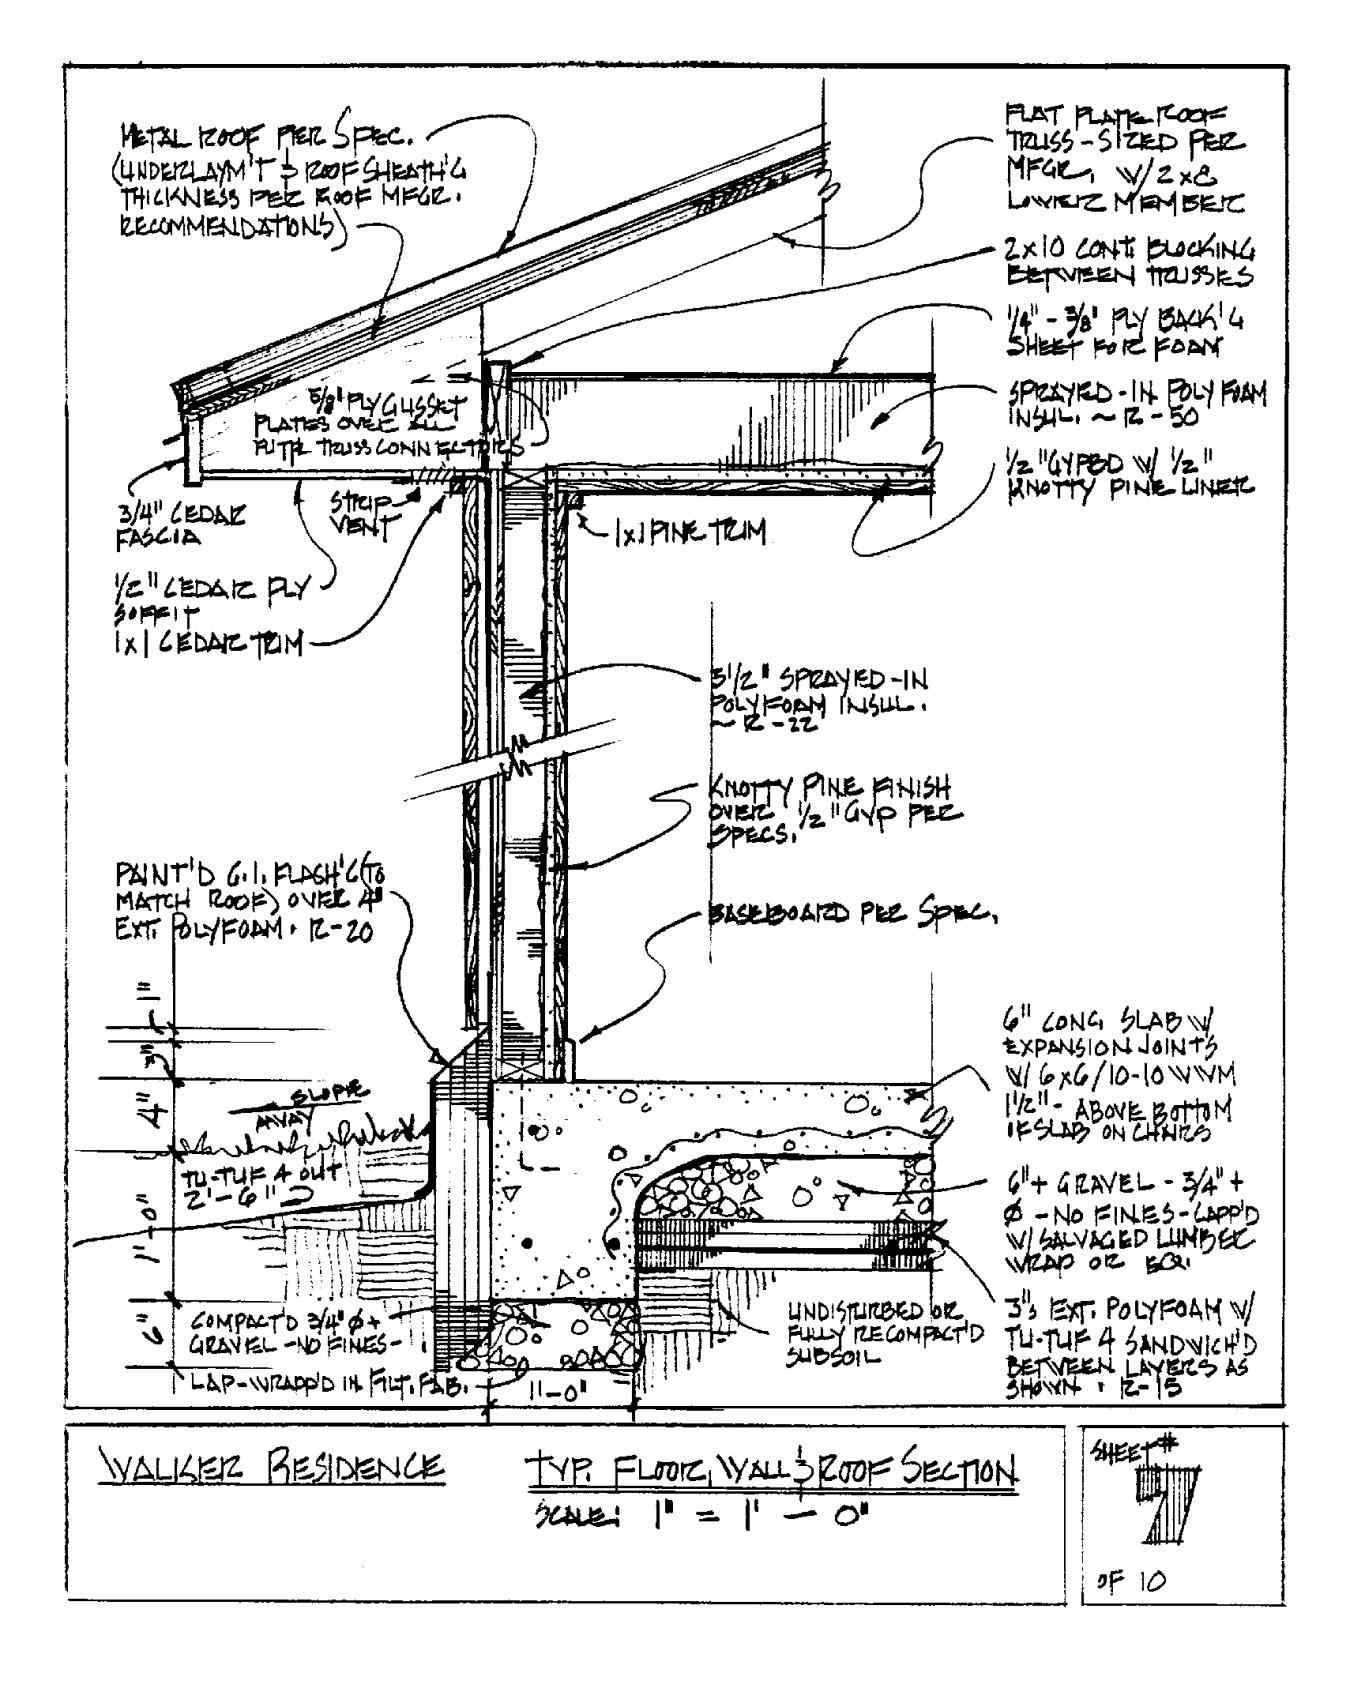 3 phase roller door wiring diagram badland winch garage drawing at getdrawings free for personal